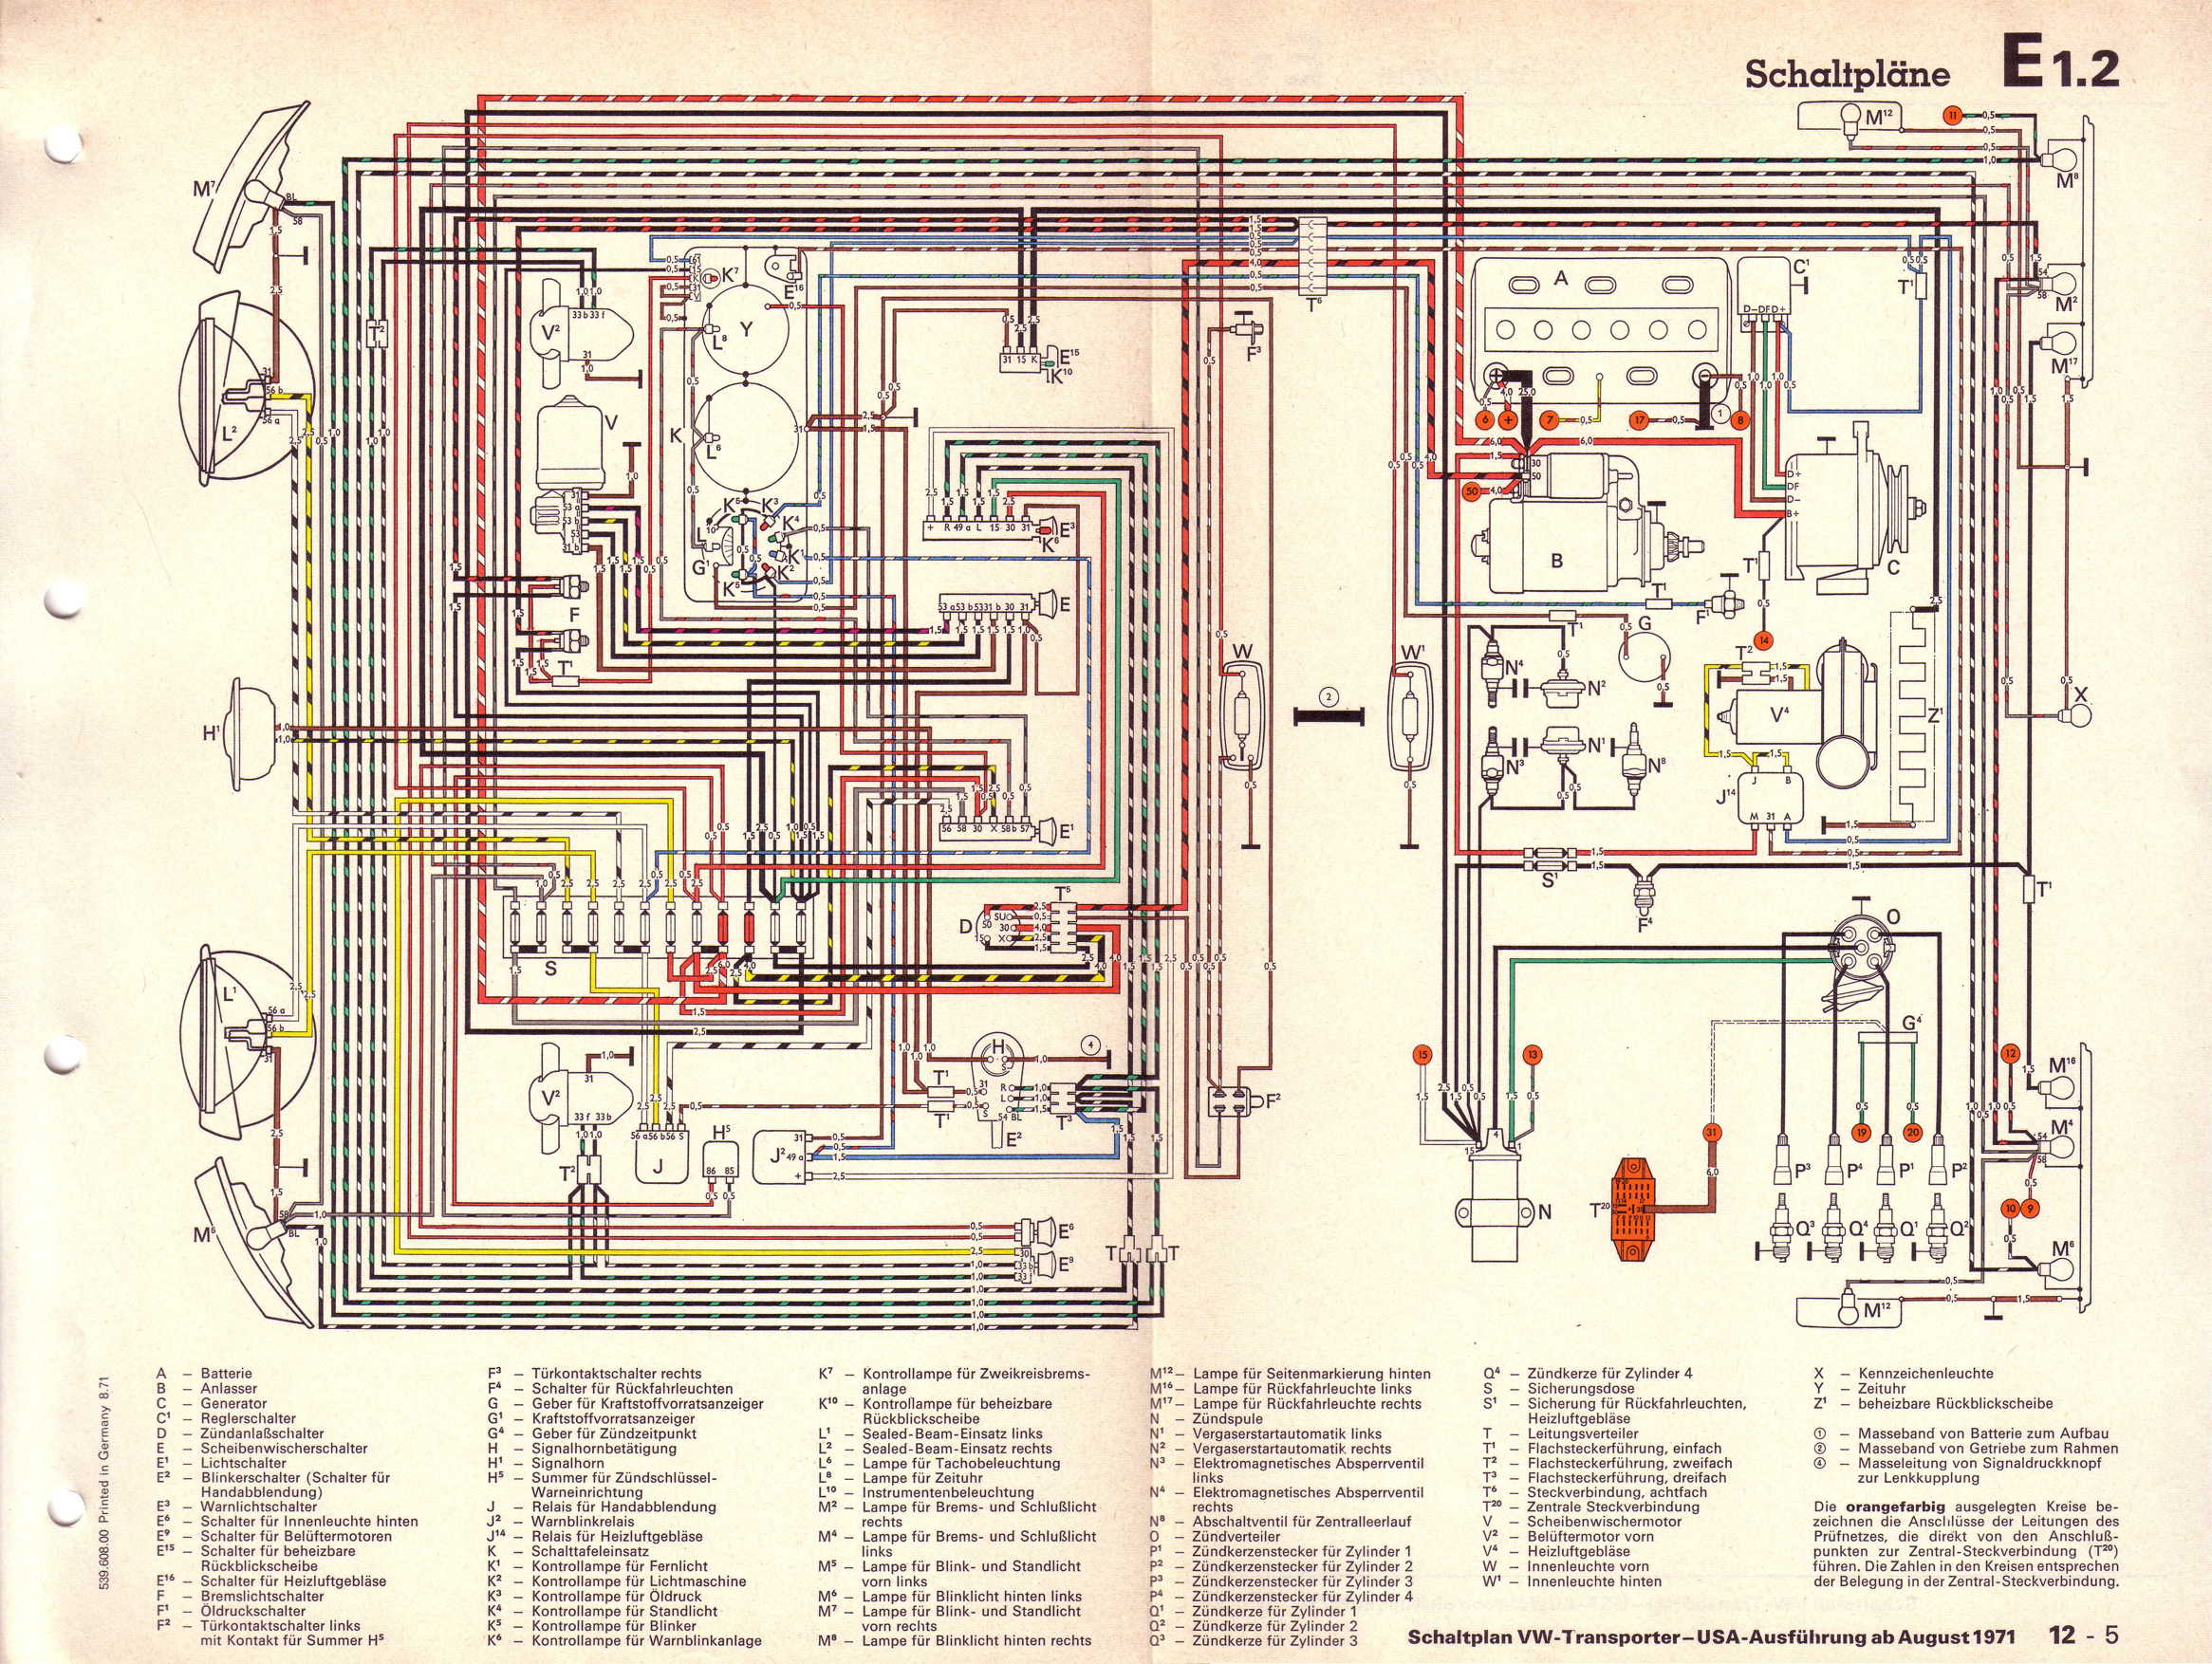 Wiring Diagram Vw T3 Sel And Schematics Volkswagen Engine Diagrams Vanagon Enthusiast U2022 Rh Rasalibre Co 4wd Westfalia Syncro